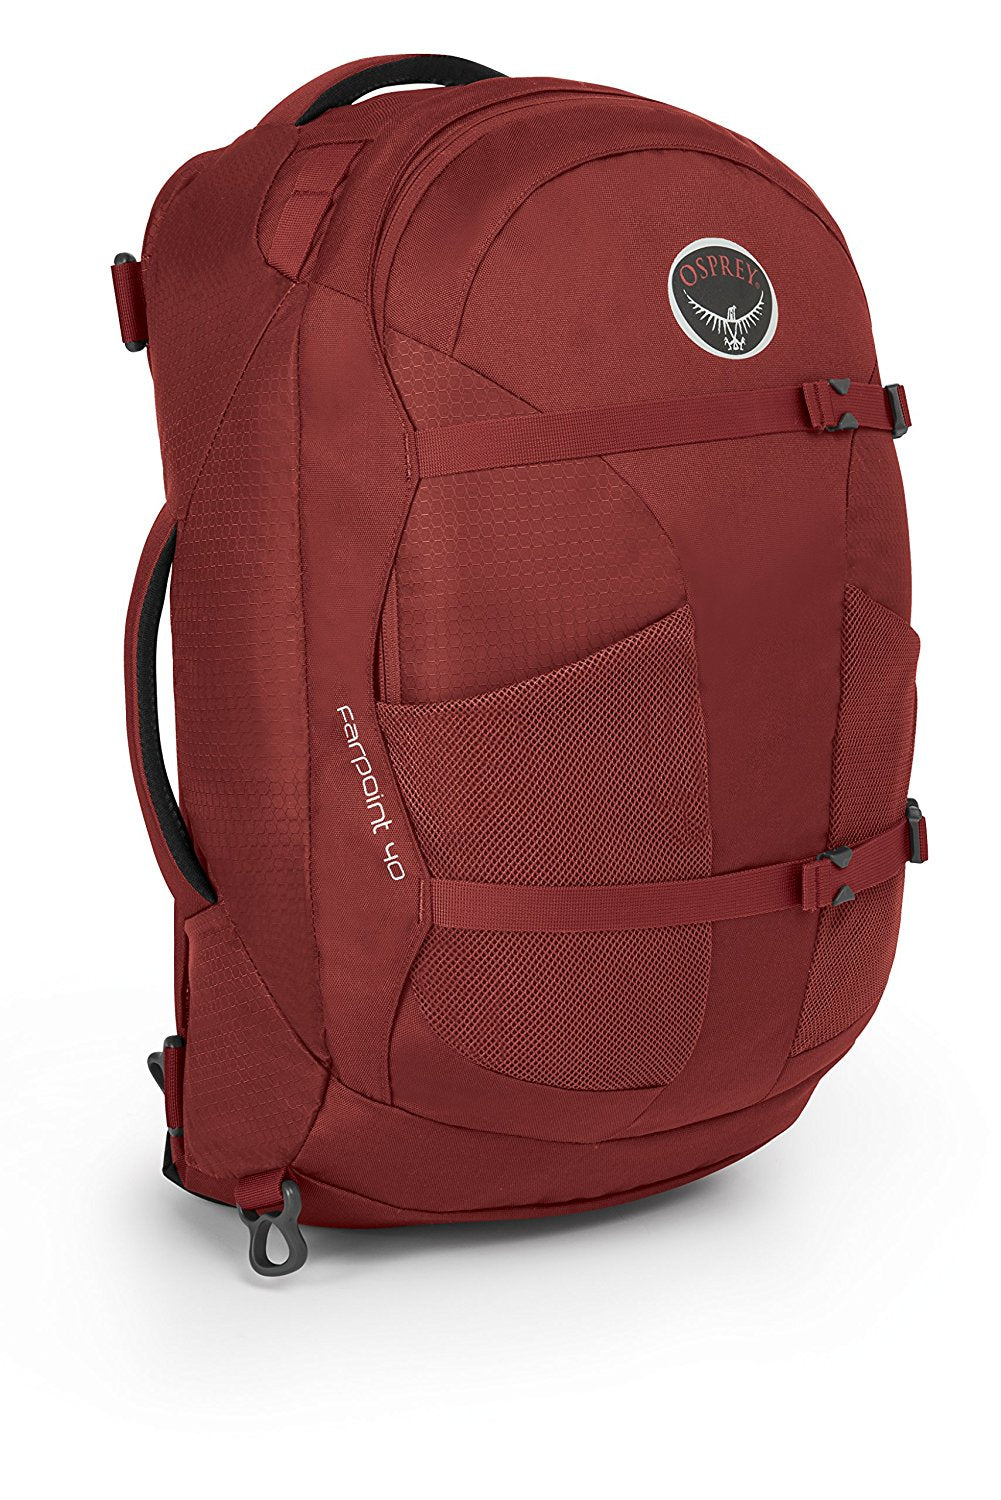 osprey farpoint 40 carry on backpack